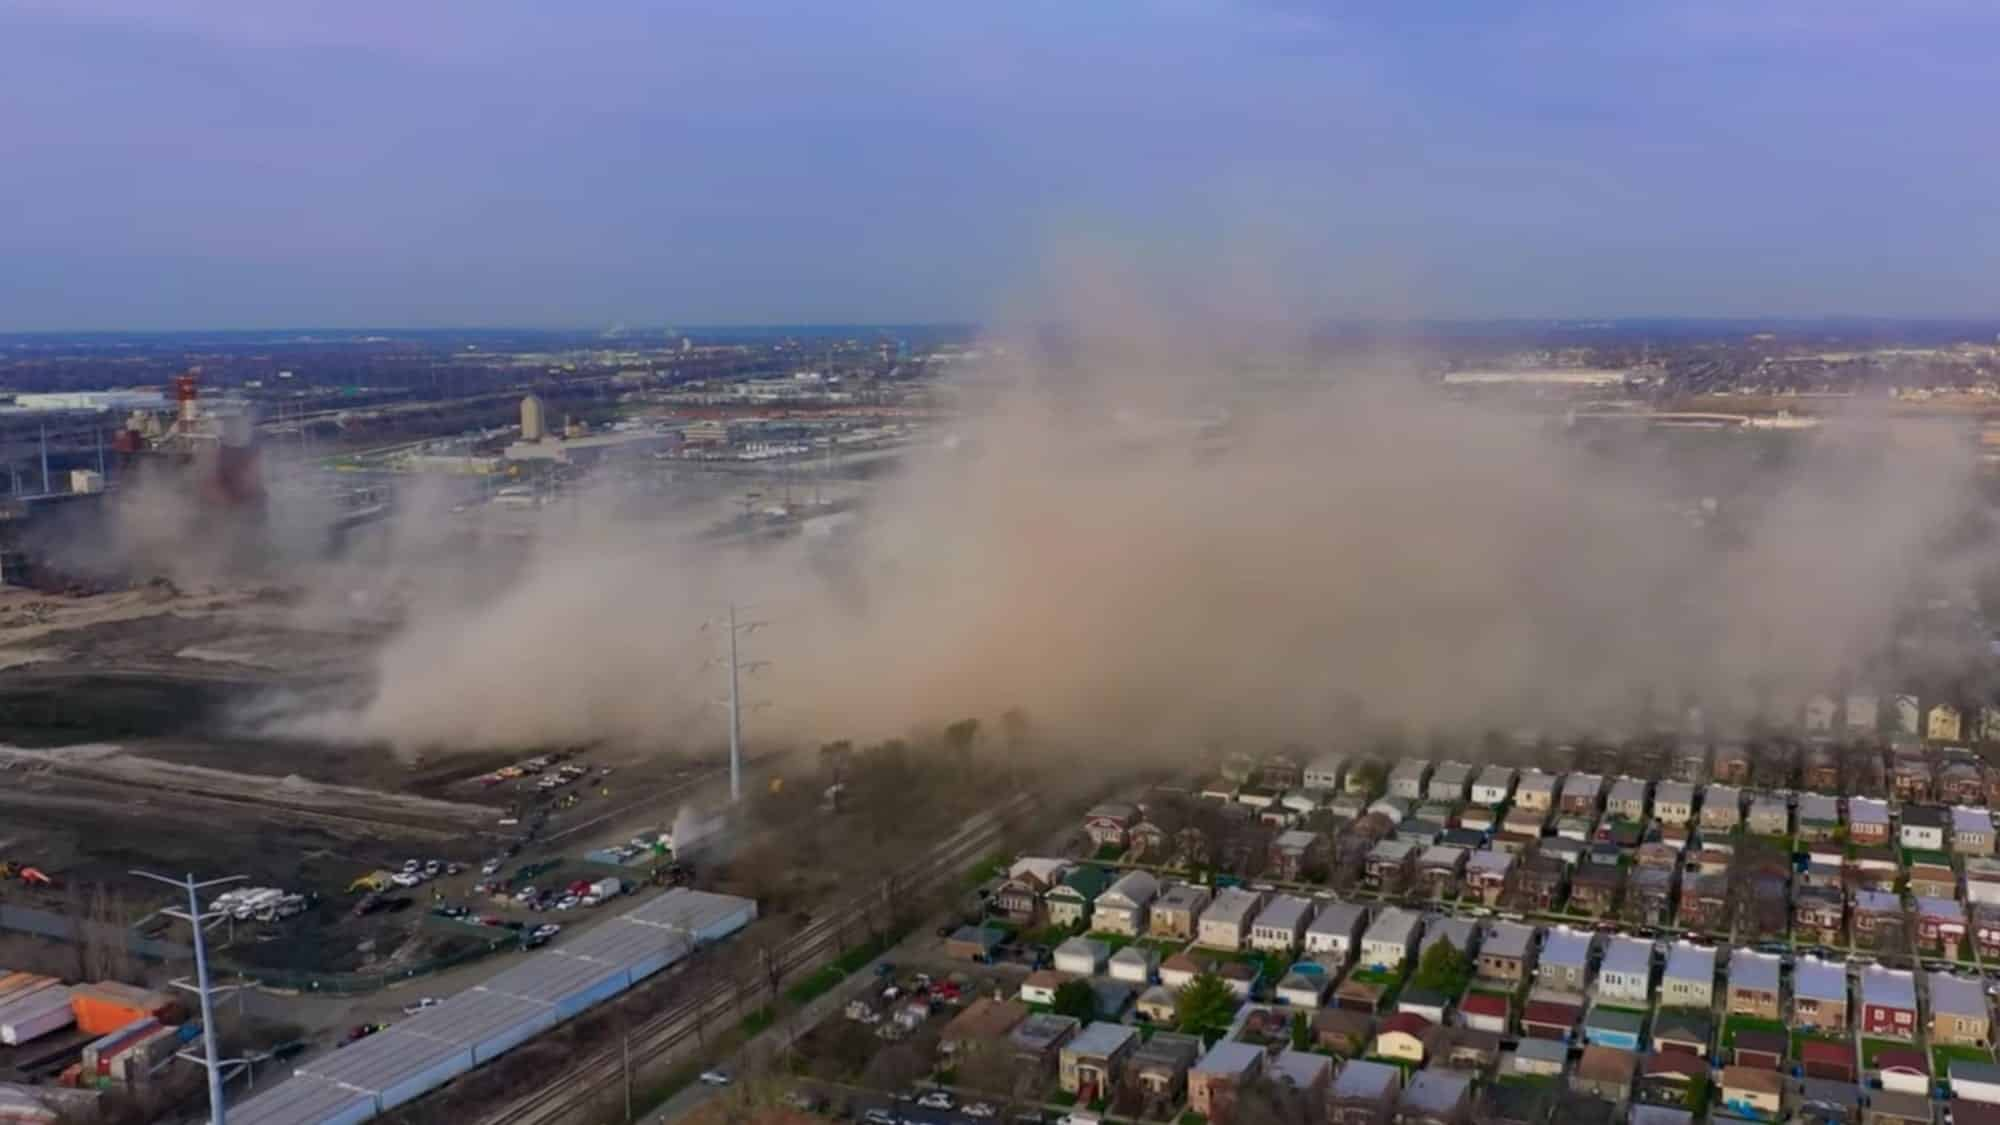 Drone captures dust cloud sweeping over Little Village after smokestack demolition